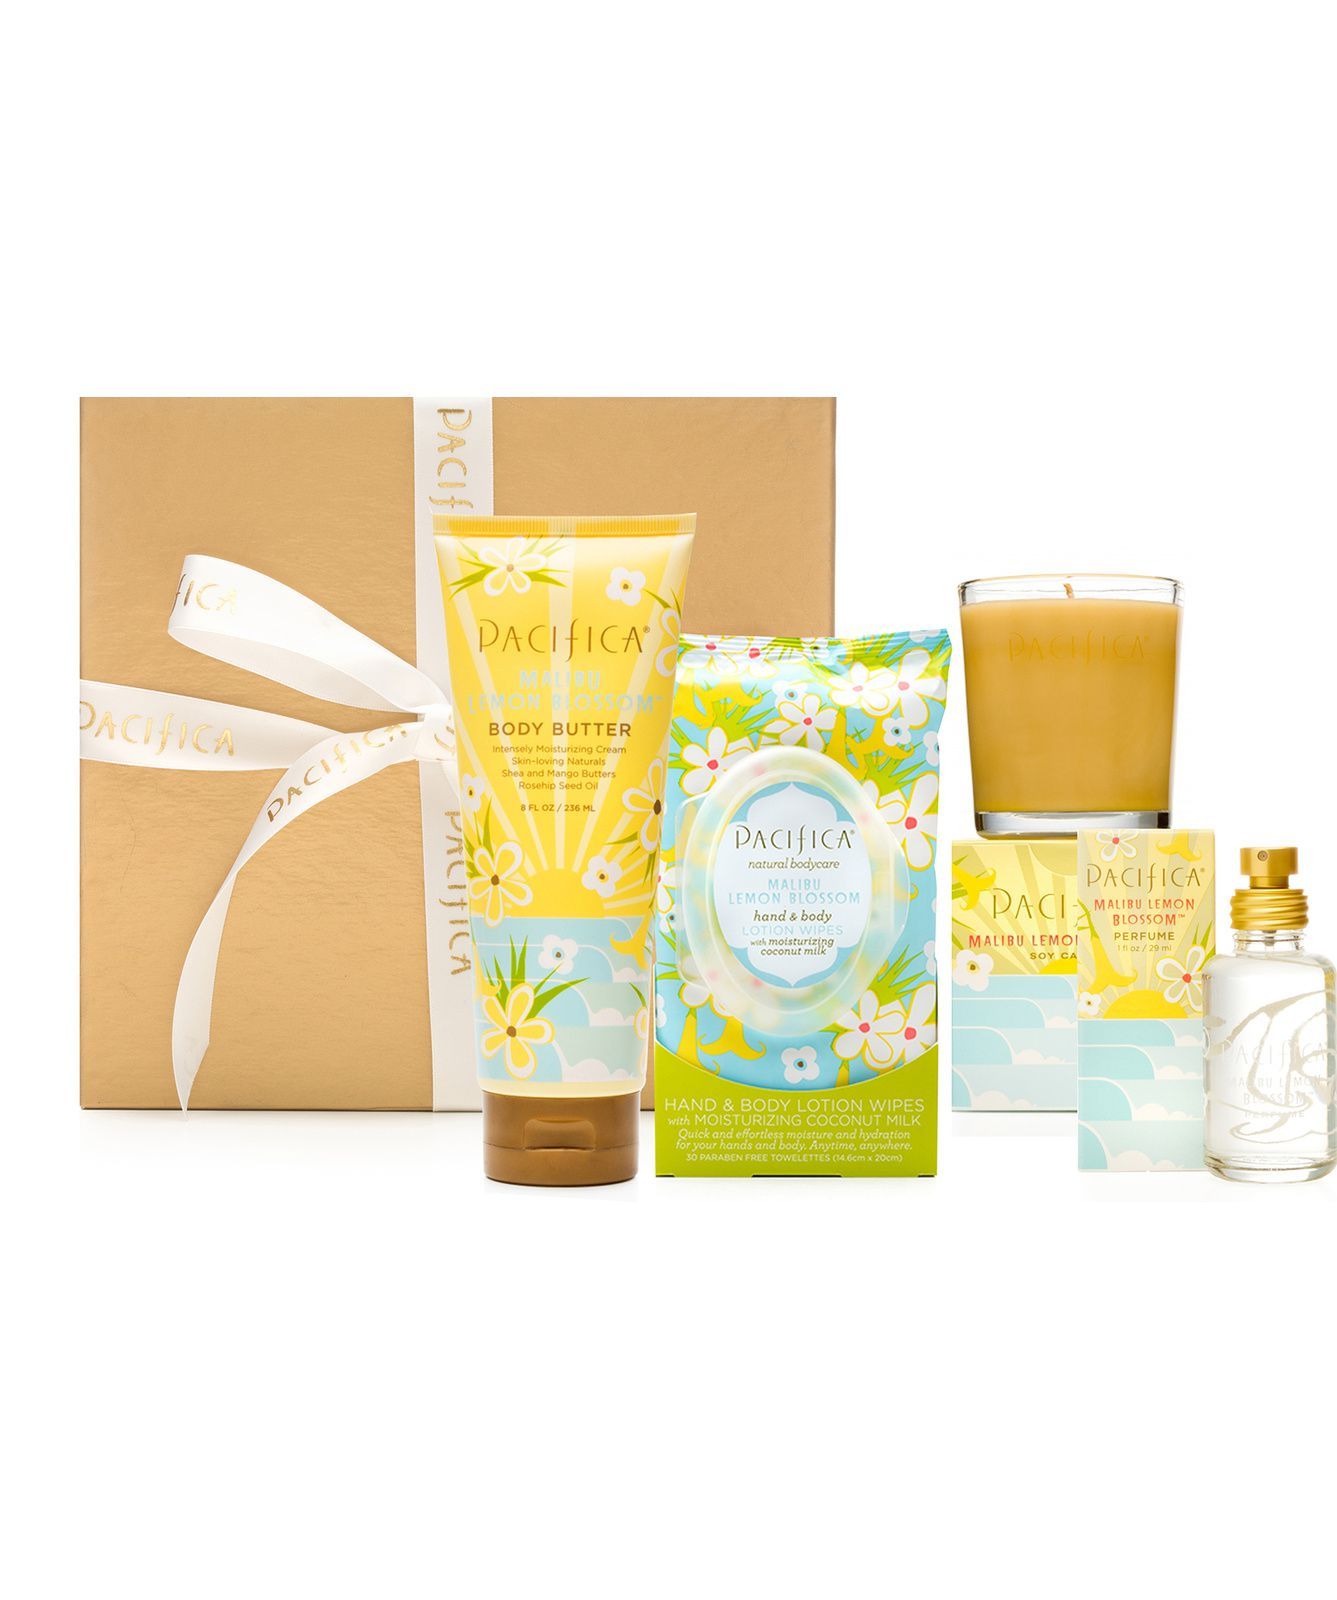 Mother's day gift set - Malibu lemon blossom